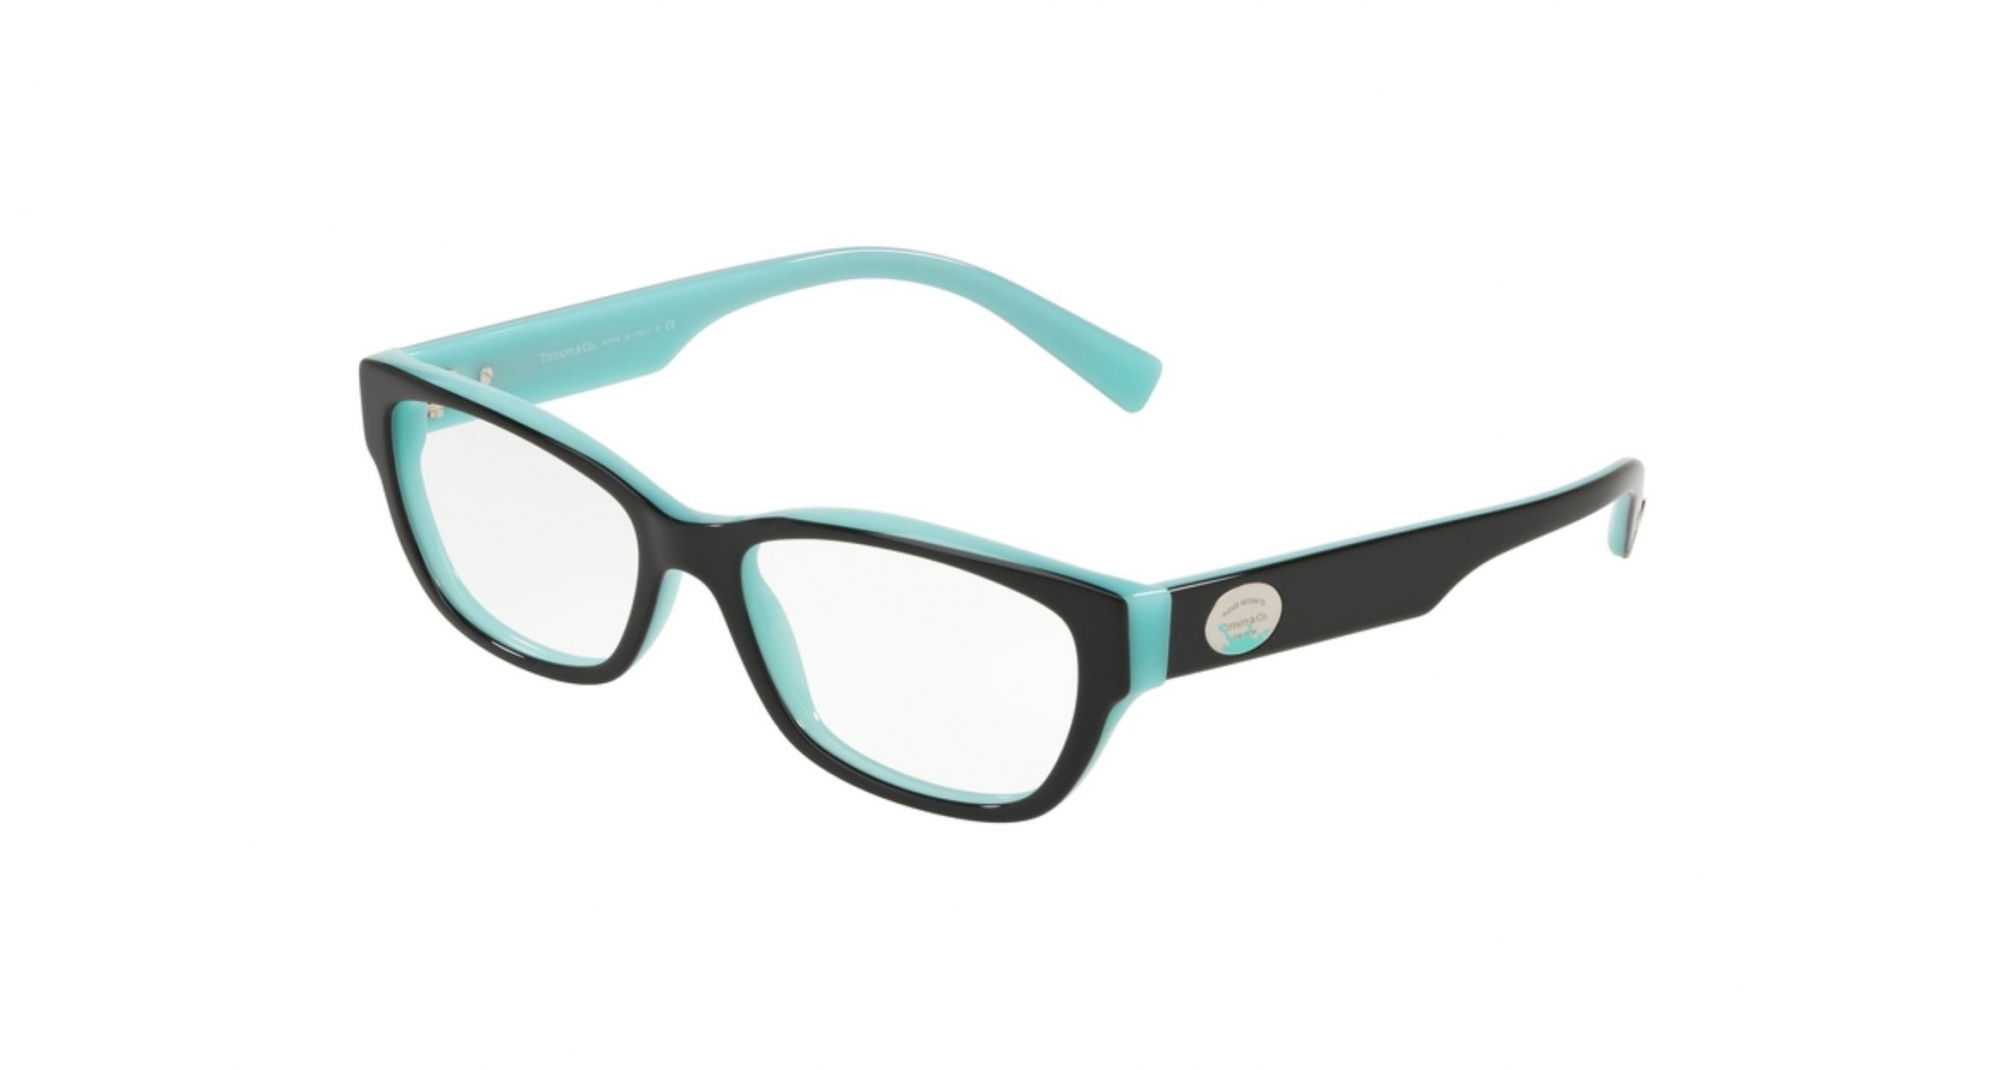 1b7f60cc053 Tiffany RETURN TO TIFFANY COLOR SPLASH TF2172 RETURN TO TIFFANY COLOR  SPLASH TF 2172 8055 Black Blue